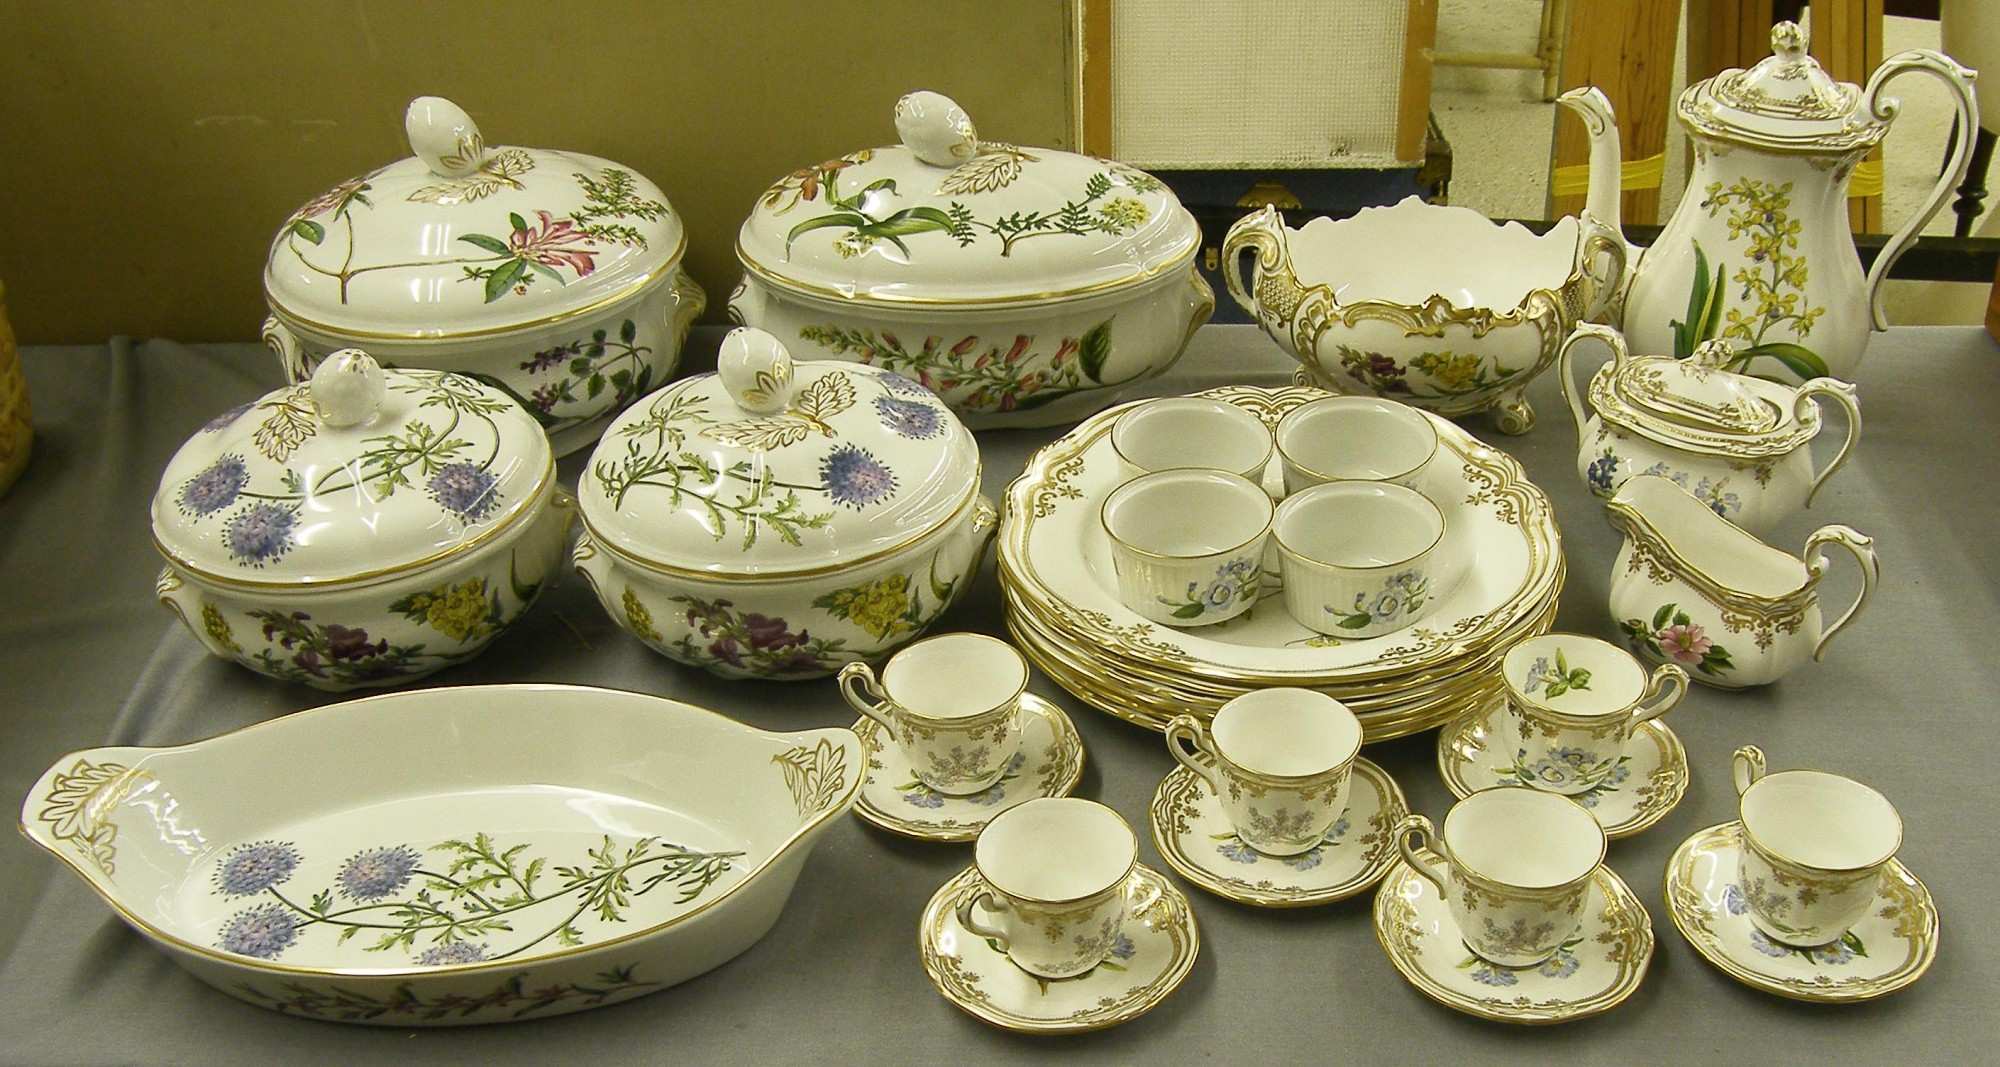 Lotto 1631 - Extensive Spode `Stafford Flowers` tea and dinner service comprising complete & Extensive Spode `Stafford Flowers` tea and dinner service ...